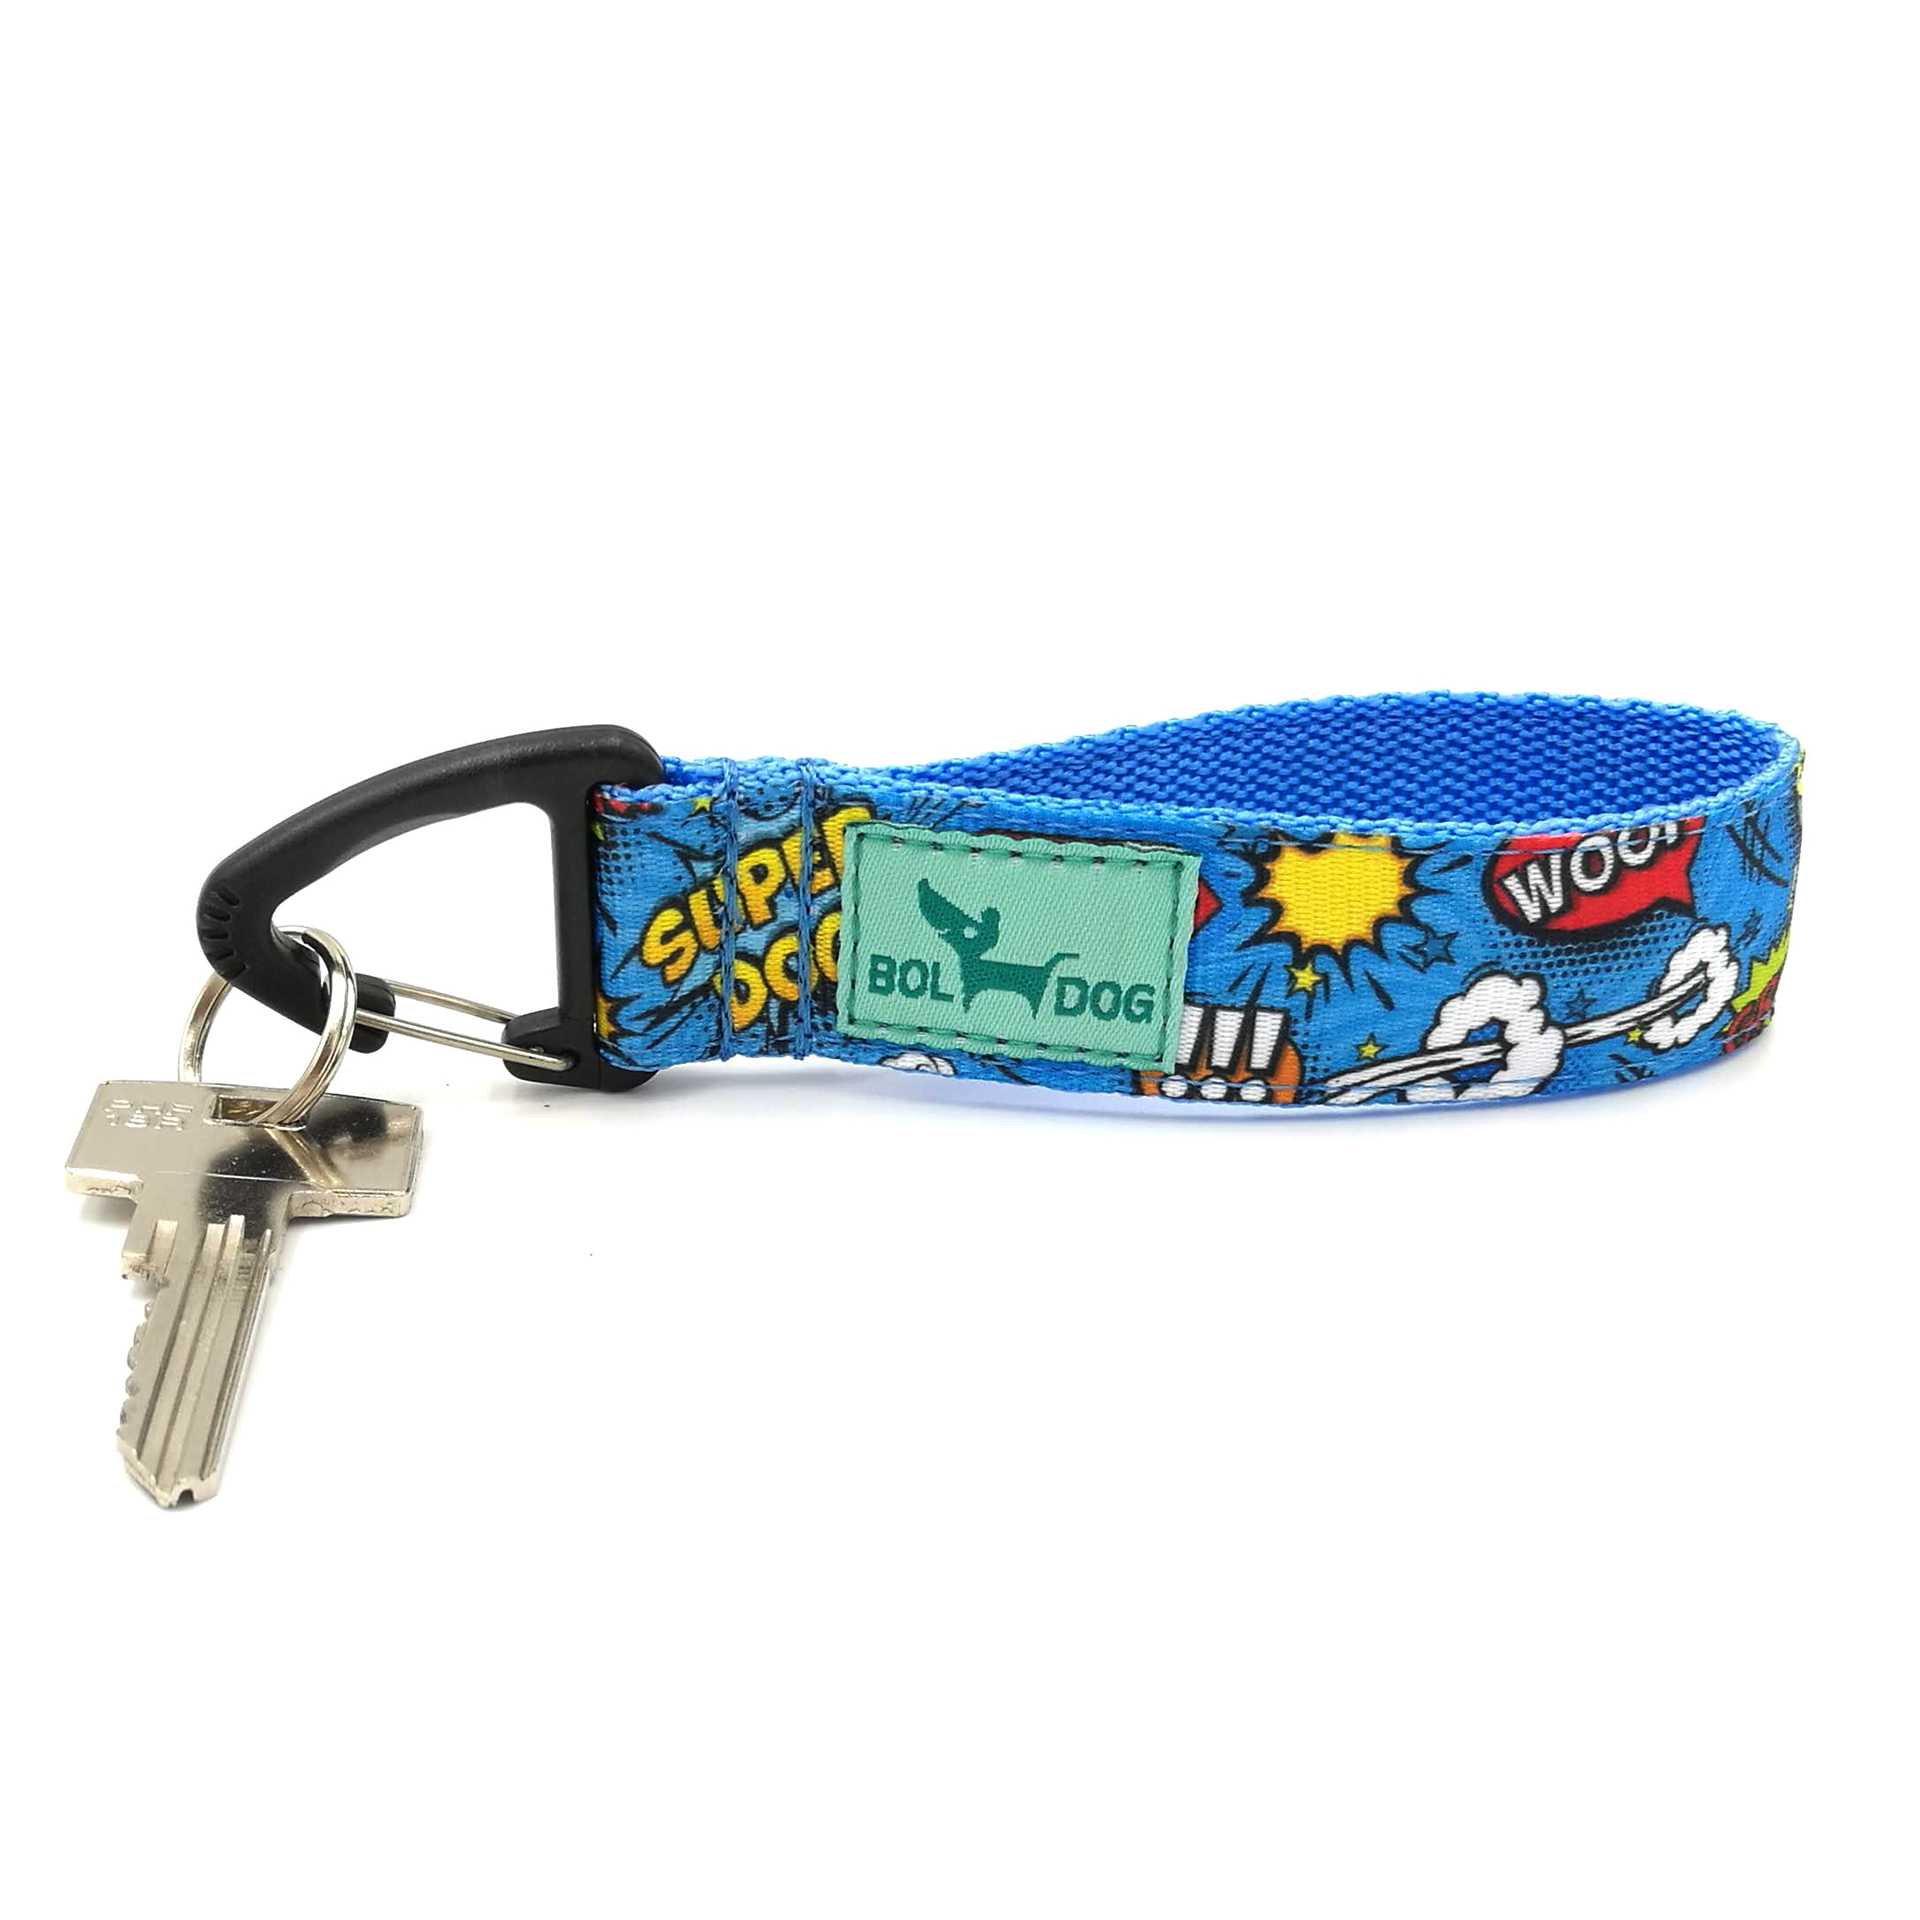 Superdog key holder